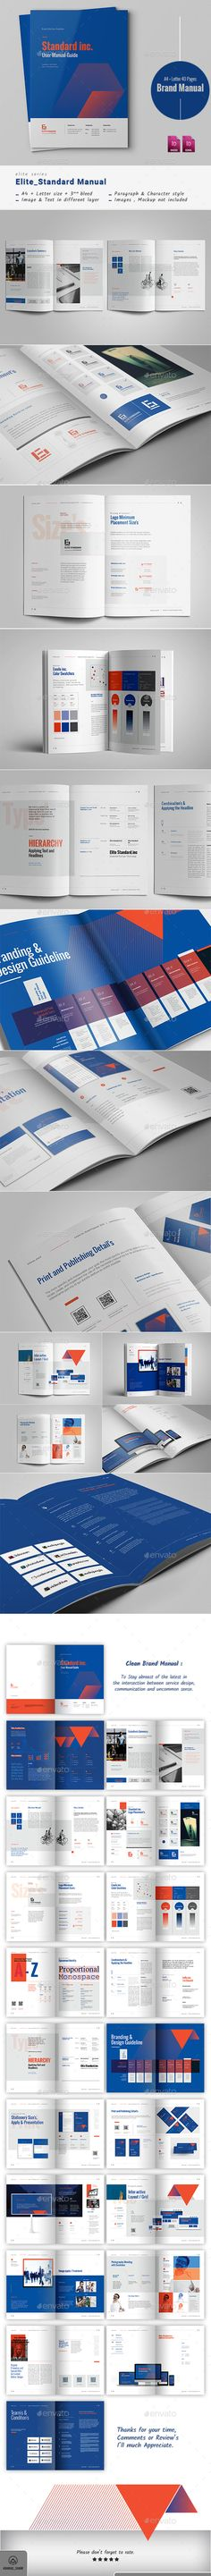 #Brand manual - #Corporate #Brochures Download here: https://graphicriver.net/item/brand-manual/20464199?ref=alena994